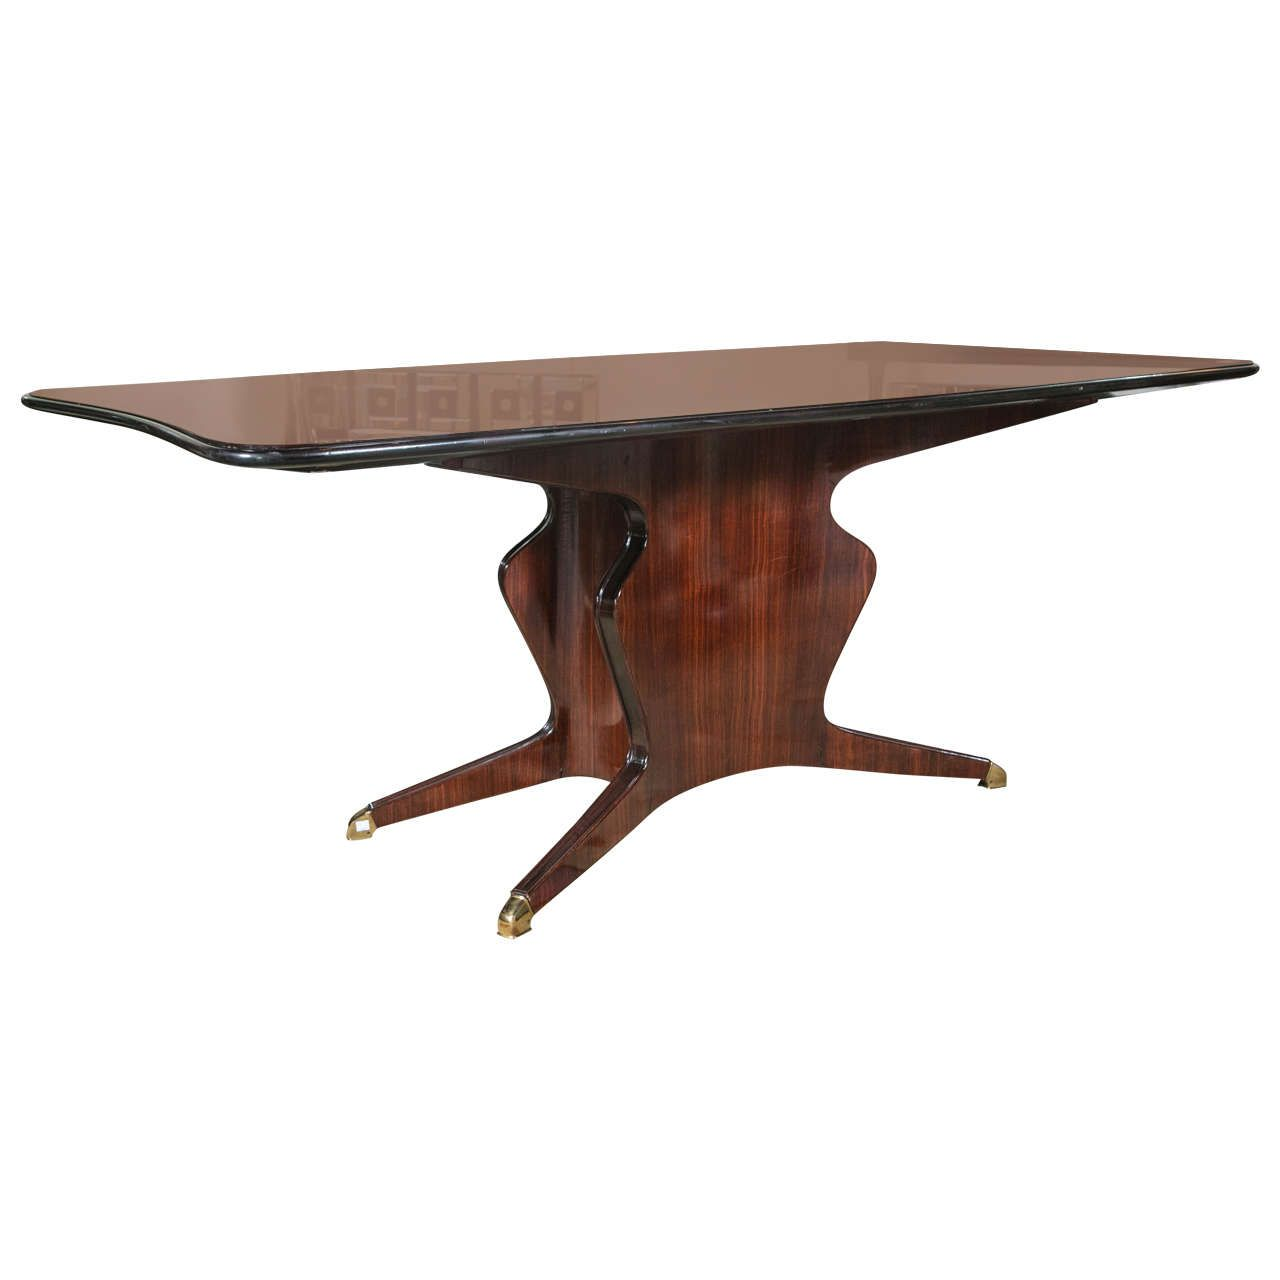 Solid Rosewood Glass Top Dining Or Conference Table By Borsani Tavoli In Legno Tavoli Legno [ 1280 x 1280 Pixel ]